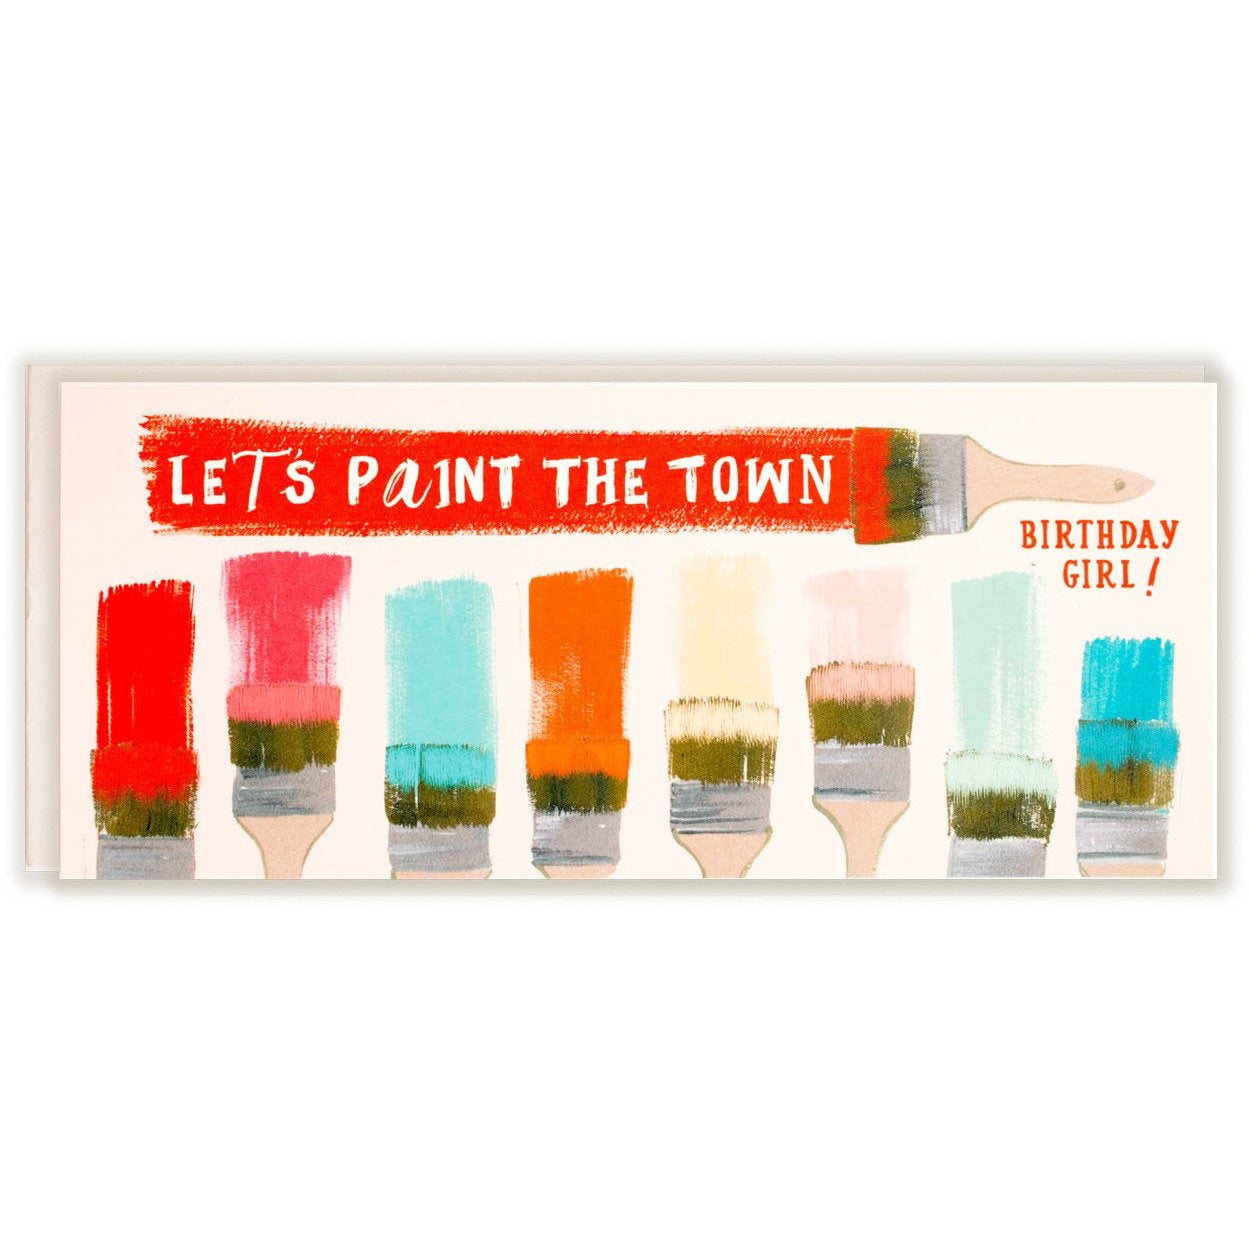 Let's Paint the Town Birthday Girl Card - The First Snow